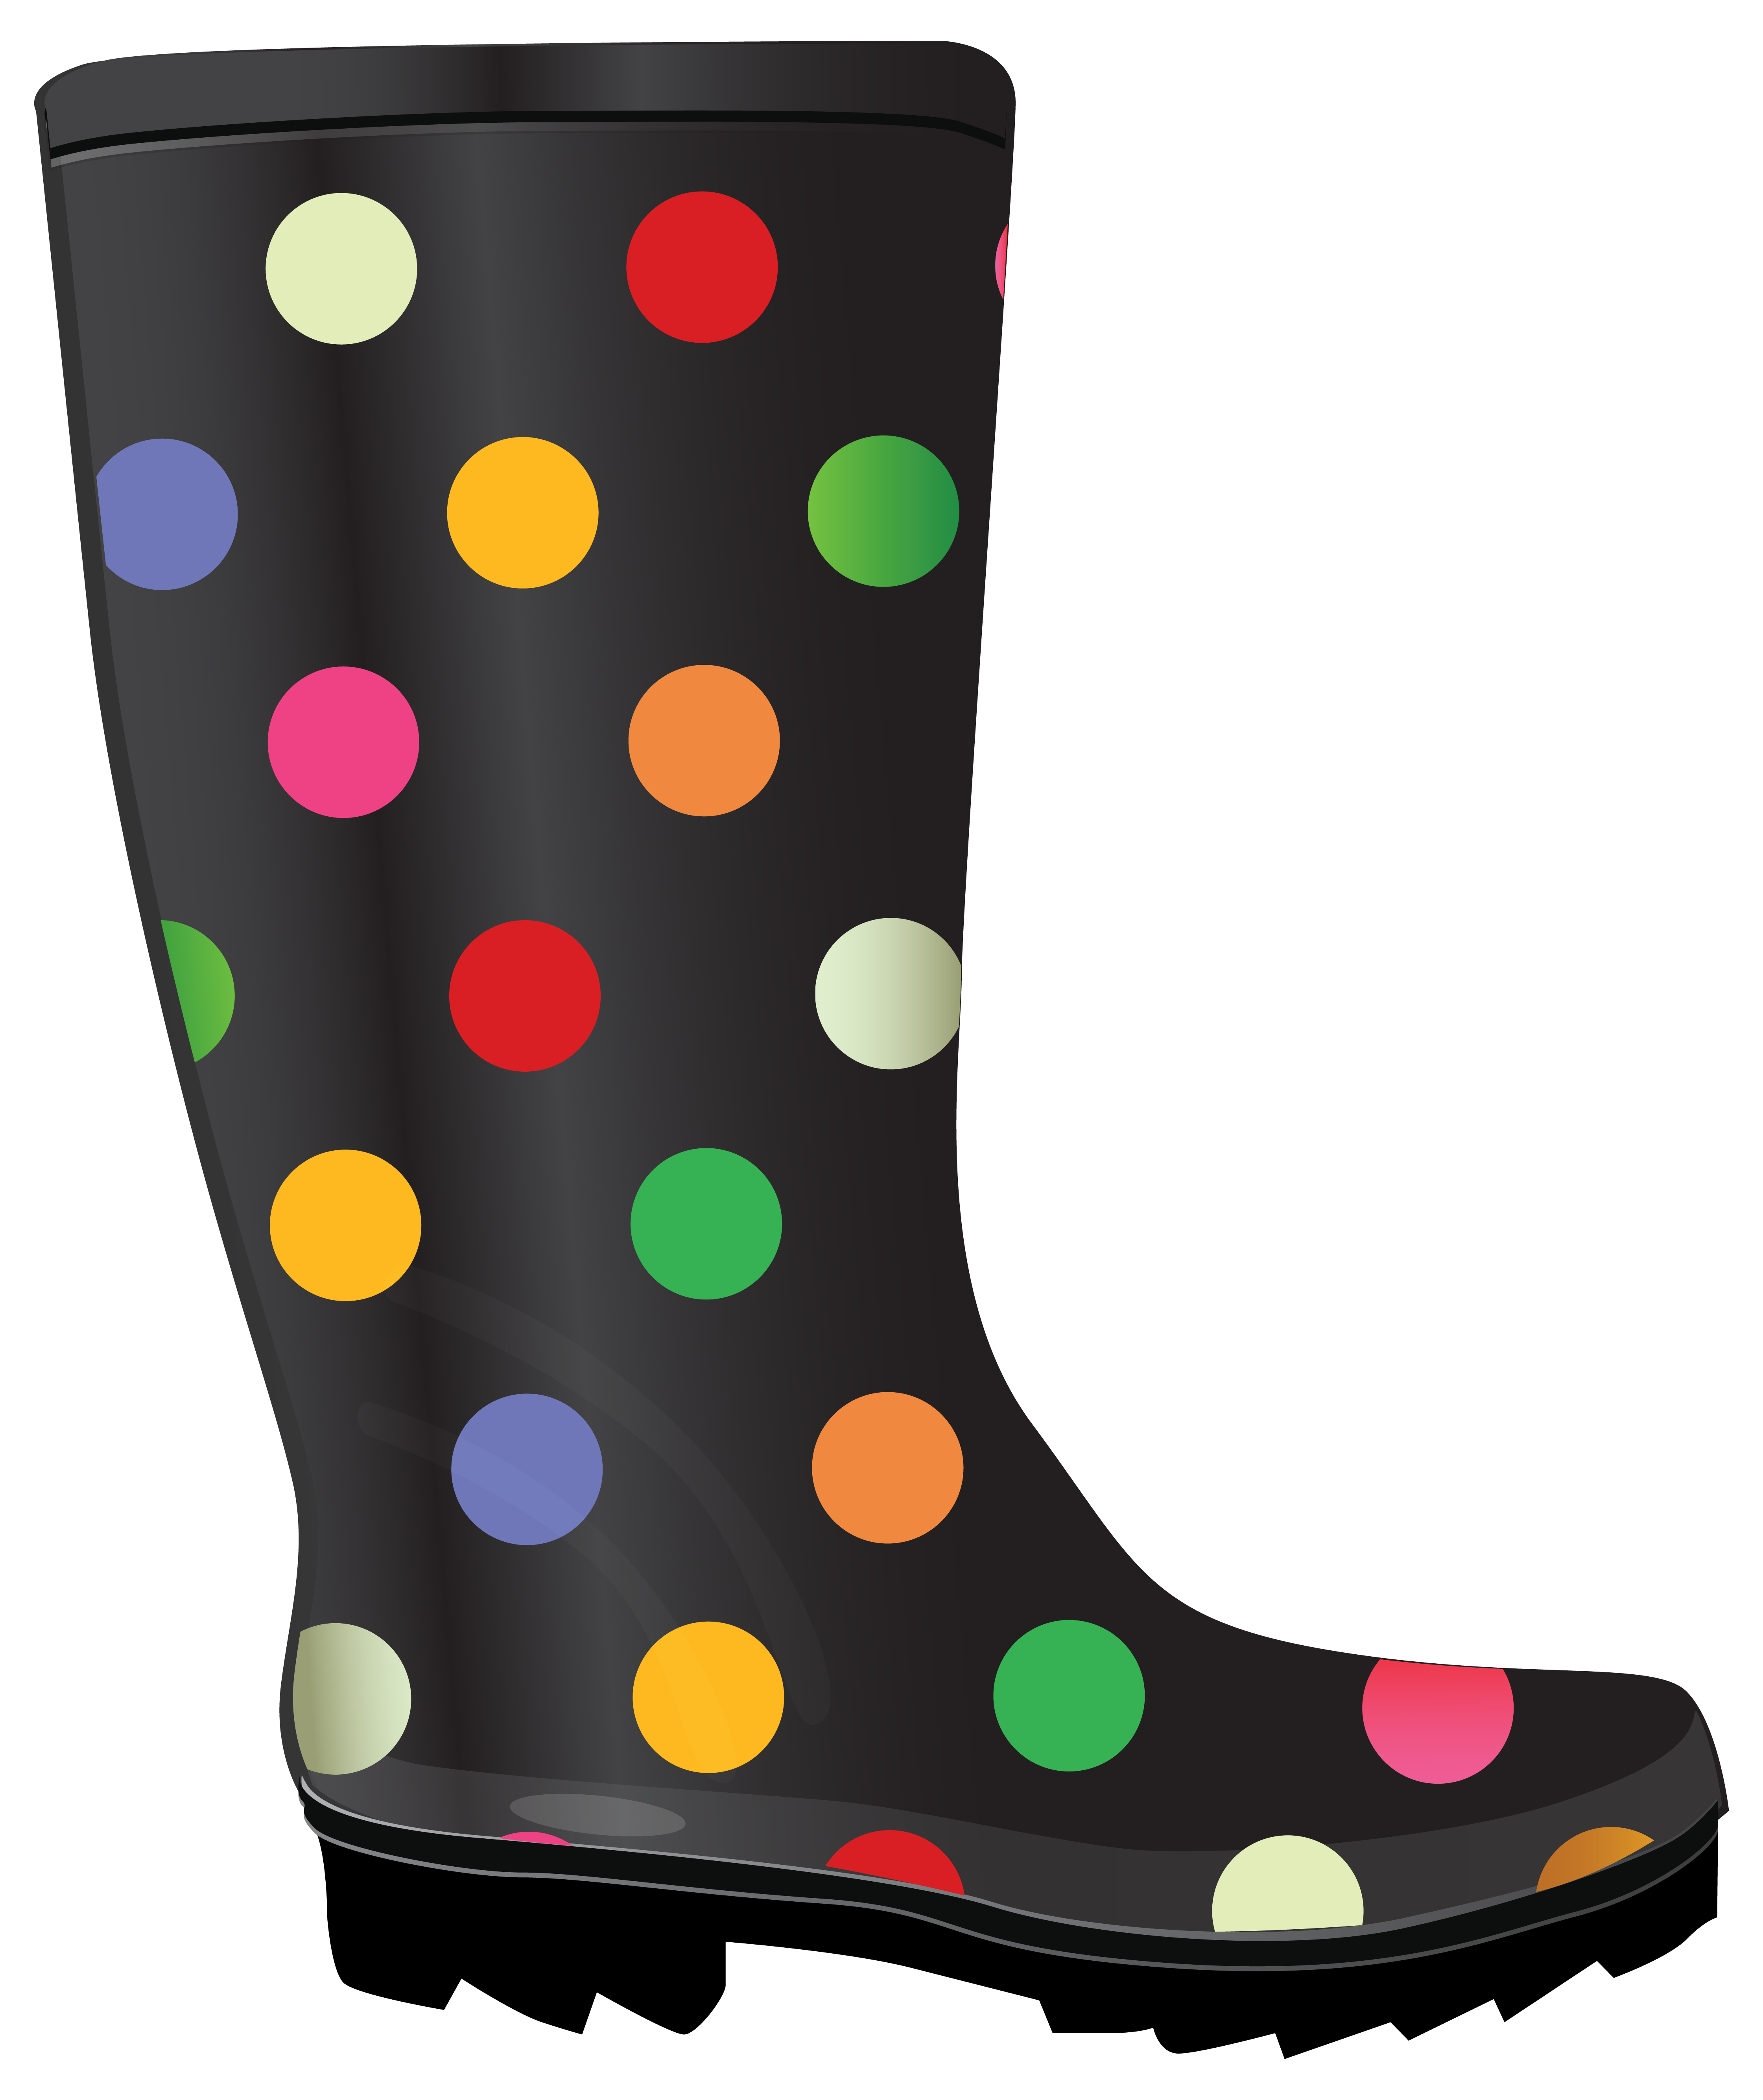 4482x5338 Dotted Rubber Boots. Rain Boots And Rubber Products